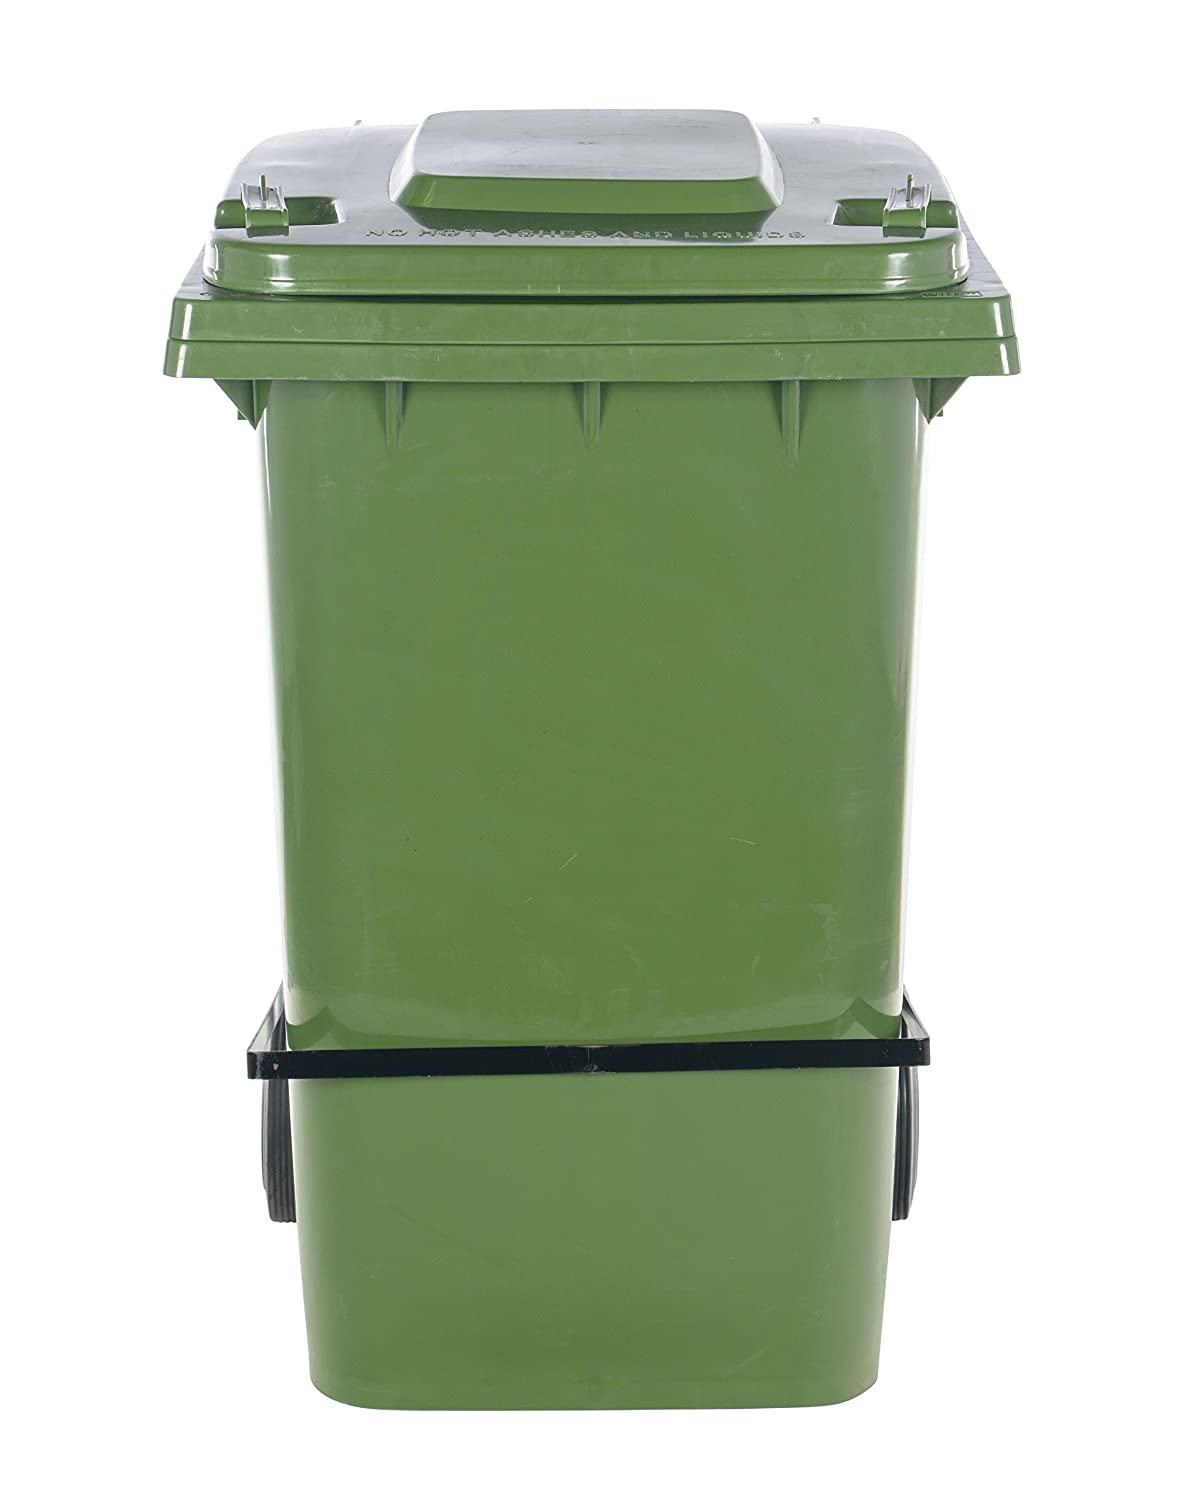 High Density Polyethylene HDPE 29-1//4 Depth 39.94 Height 28.5 Length 64 lb Vestil TH-64-GRN-FL Trash Can with Foot Lid Lift 23.31 Width Capacity Green